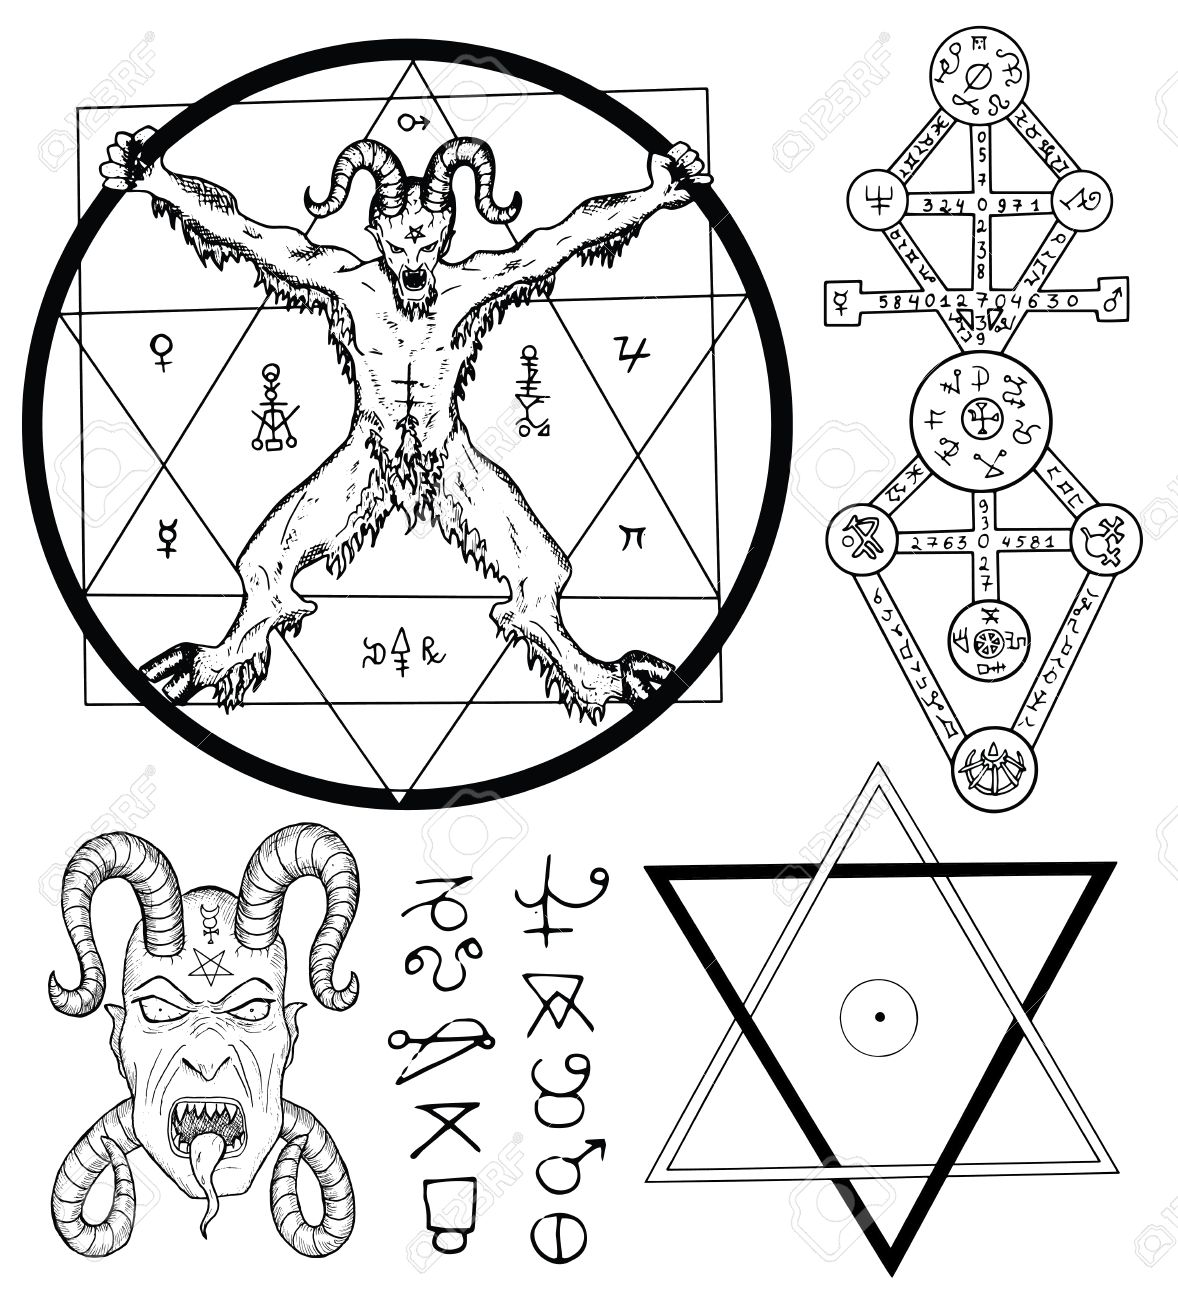 Satanic Drawing at GetDrawings com | Free for personal use